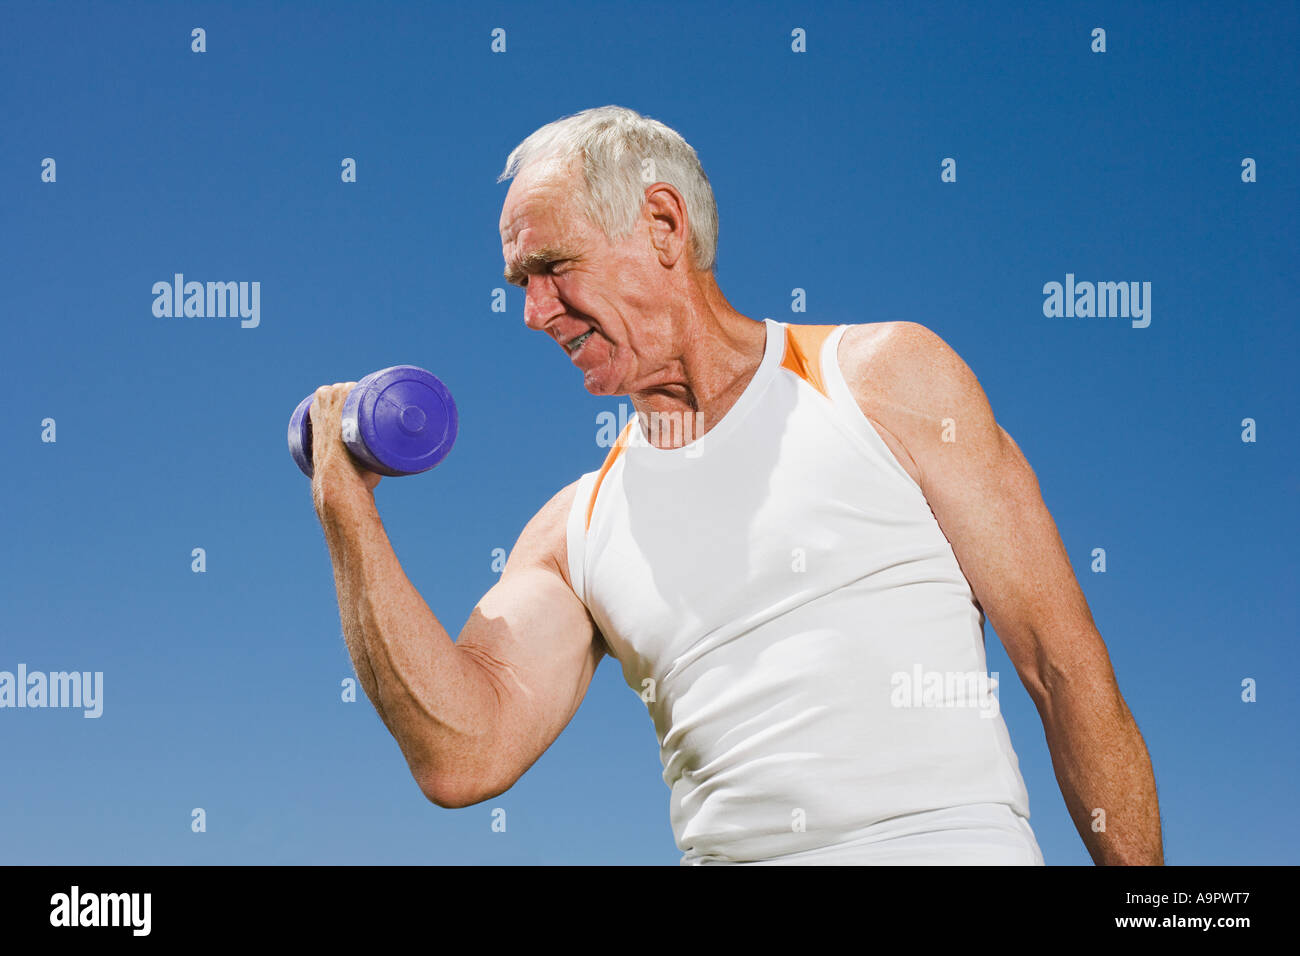 Senior adult man lifting a dumbbell Stock Photo